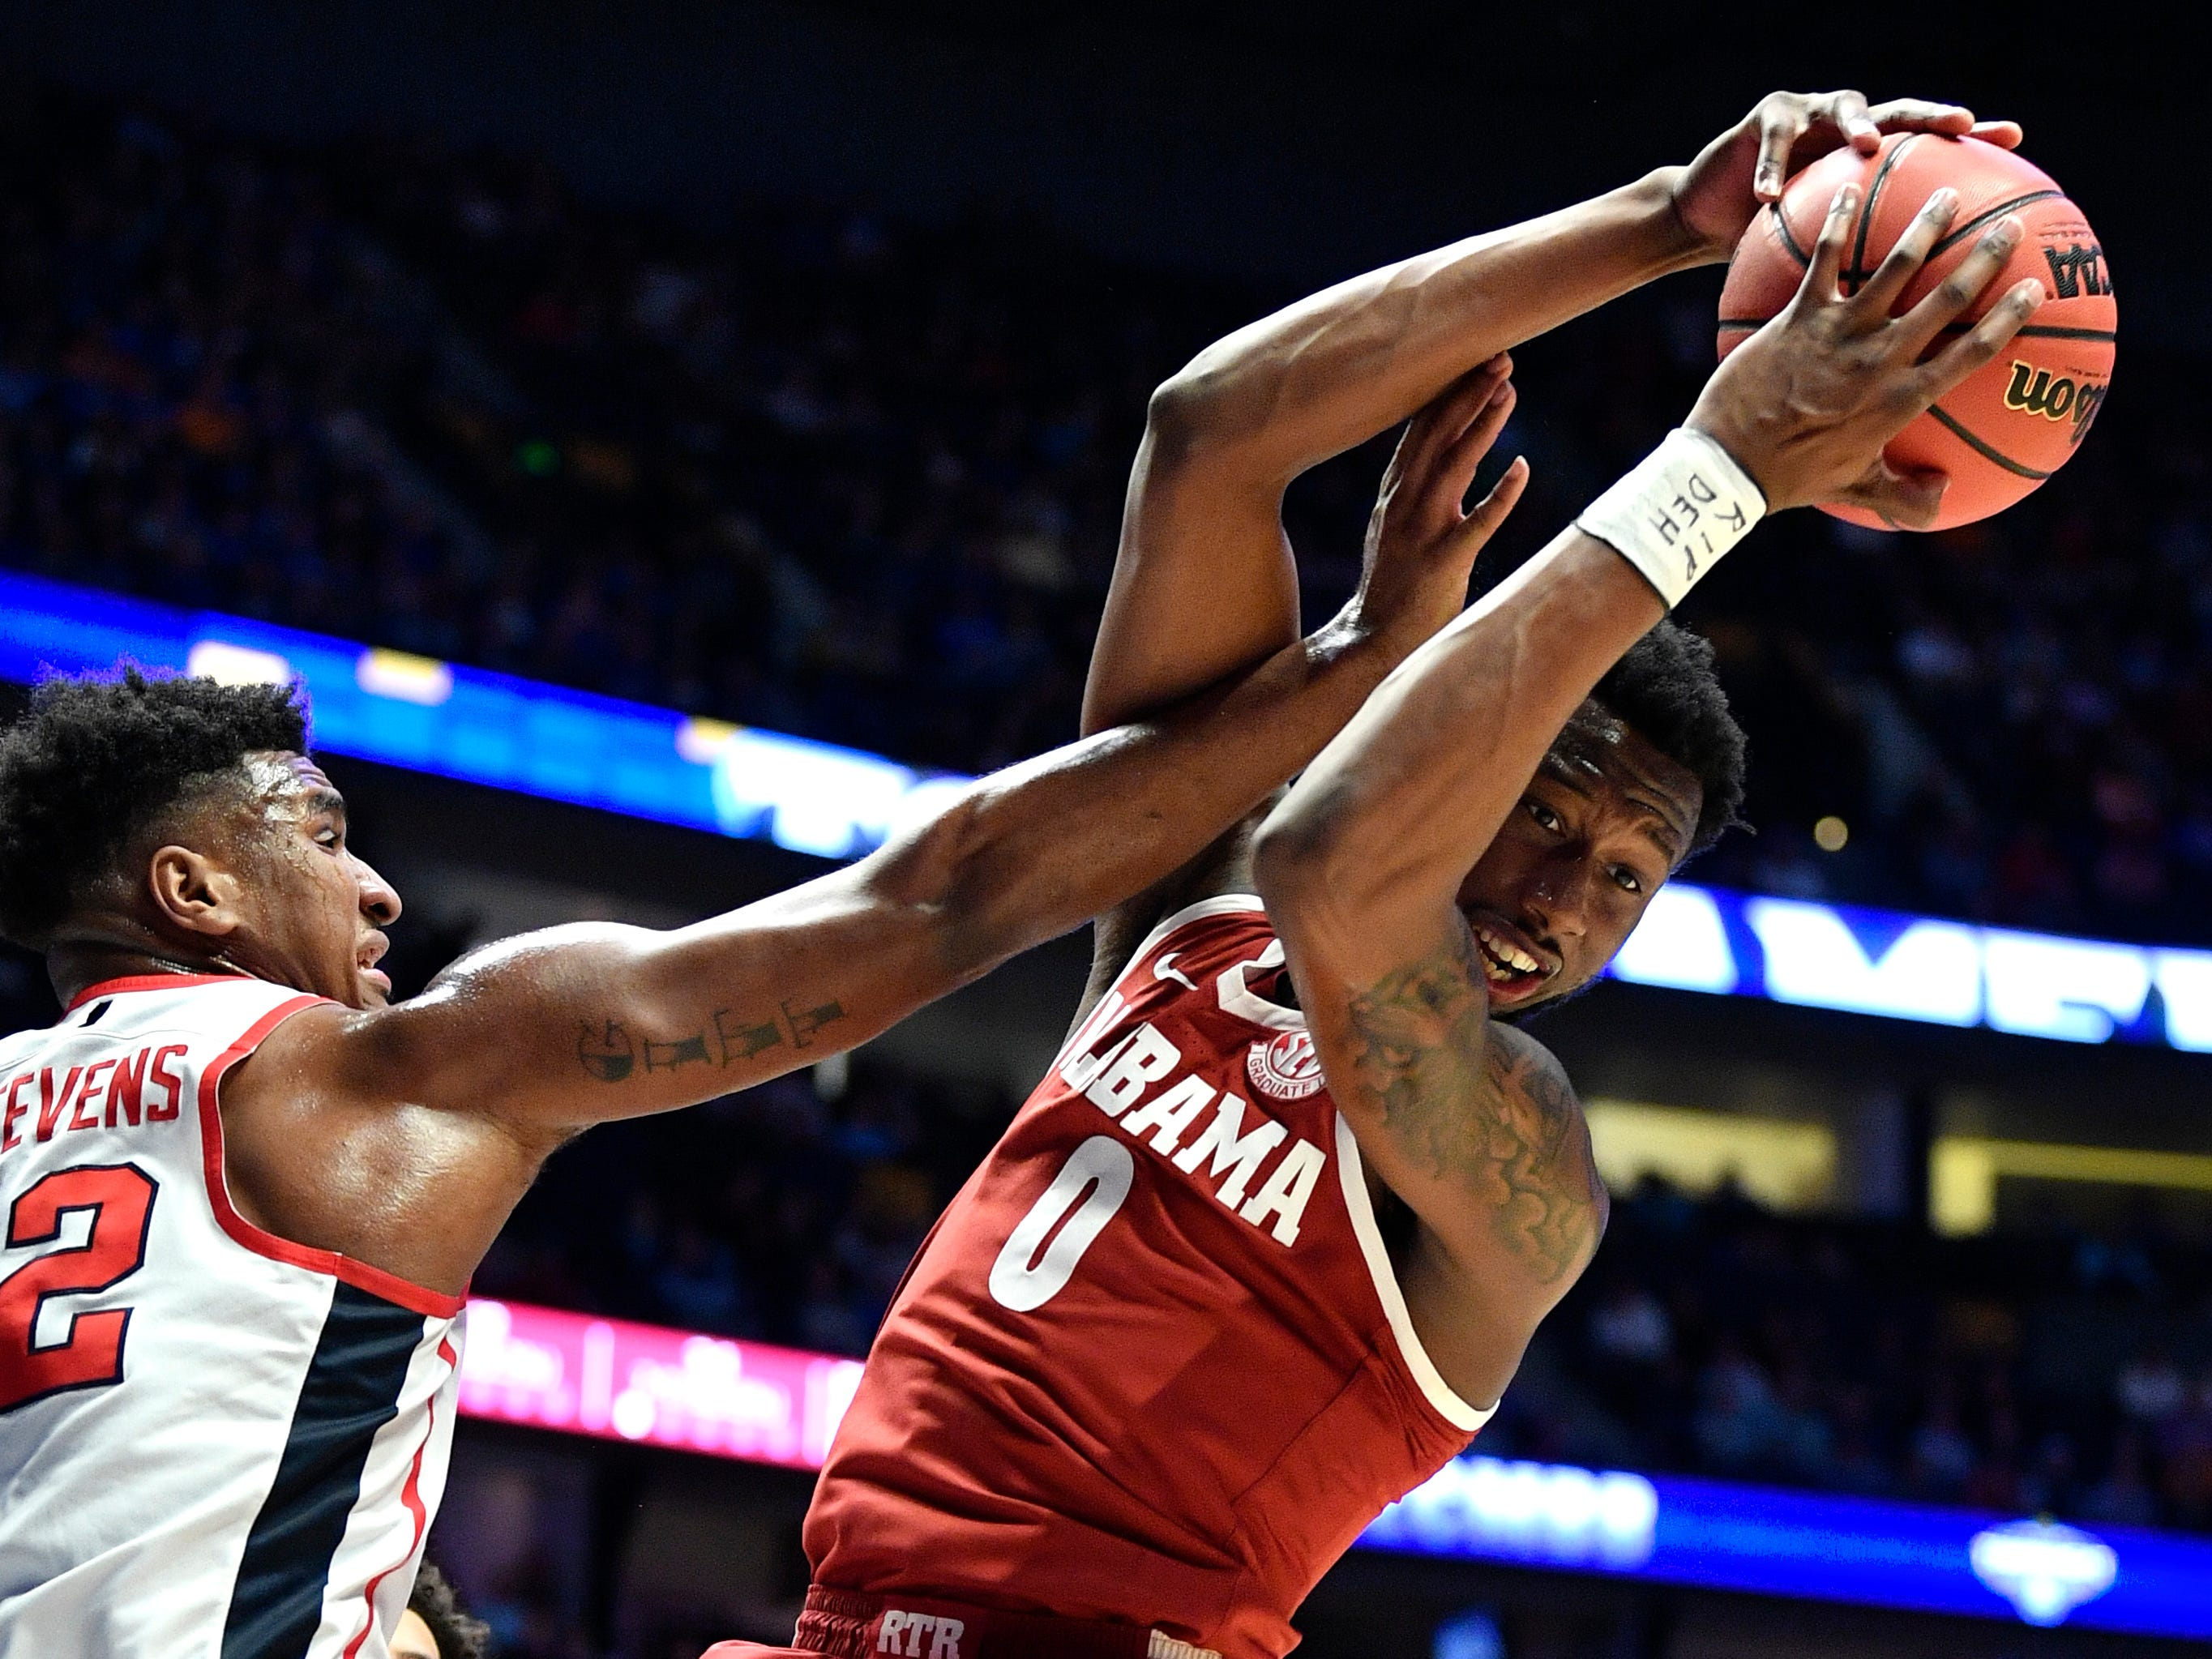 Alabama forward Donta Hall (0) comes down with a rebound defended by Ole Miss forward Bruce Stevens (12) during the second half of the SEC Men's Basketball Tournament game at Bridgestone Arena in Nashville, Tenn., Thursday, March 14, 2019.